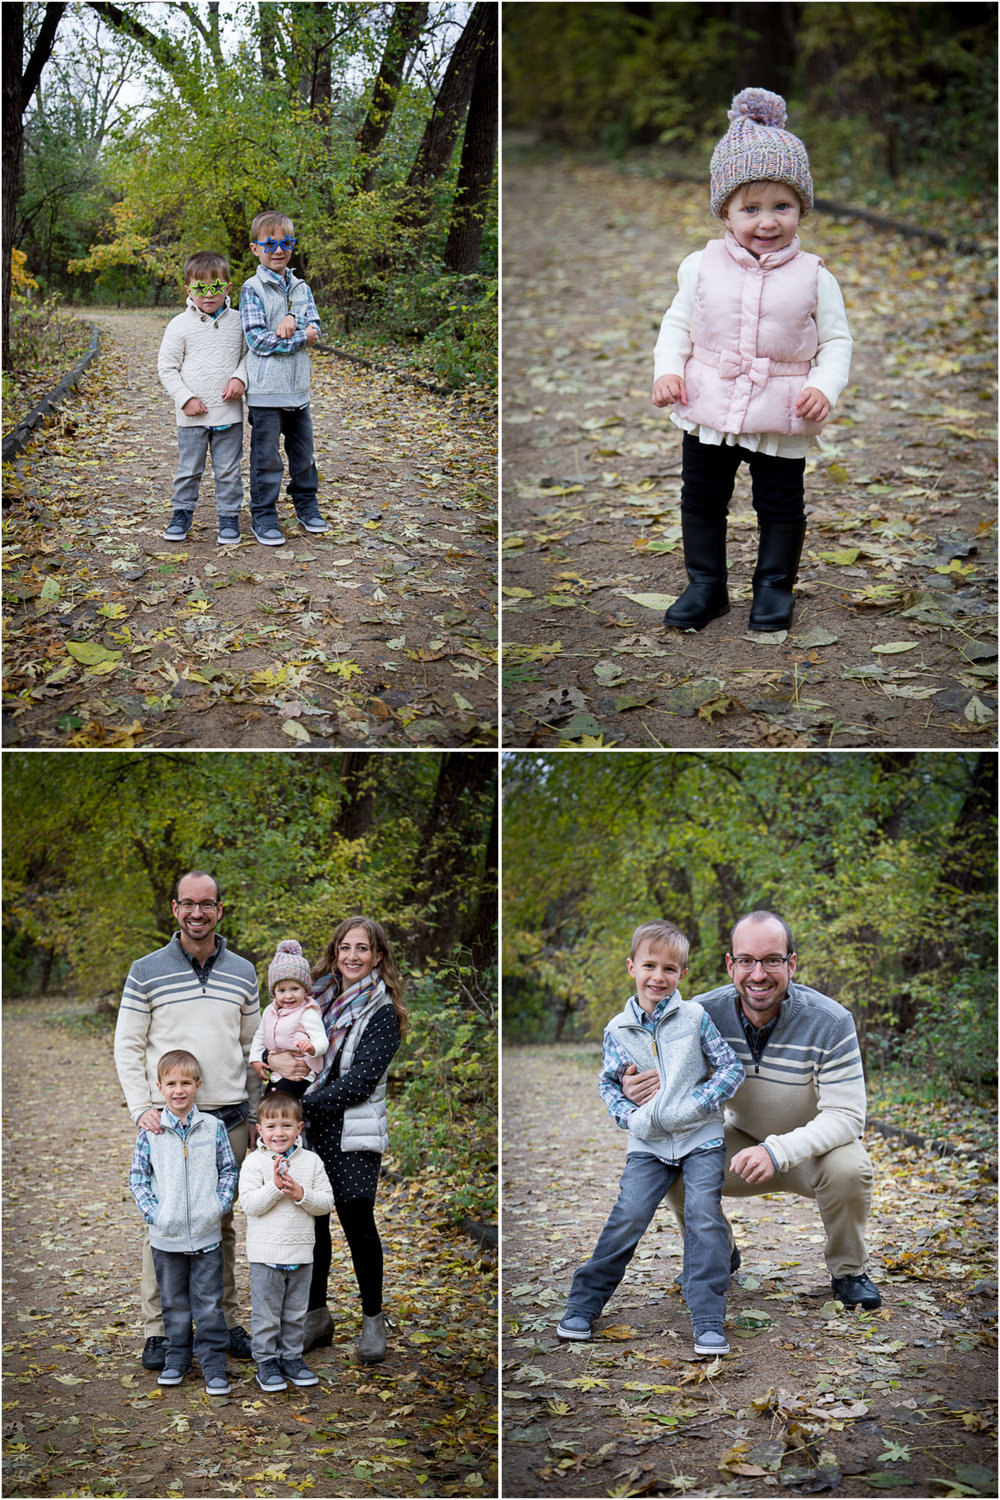 01-fall-family-session-hiking-trail-mahonen-photography.jpg